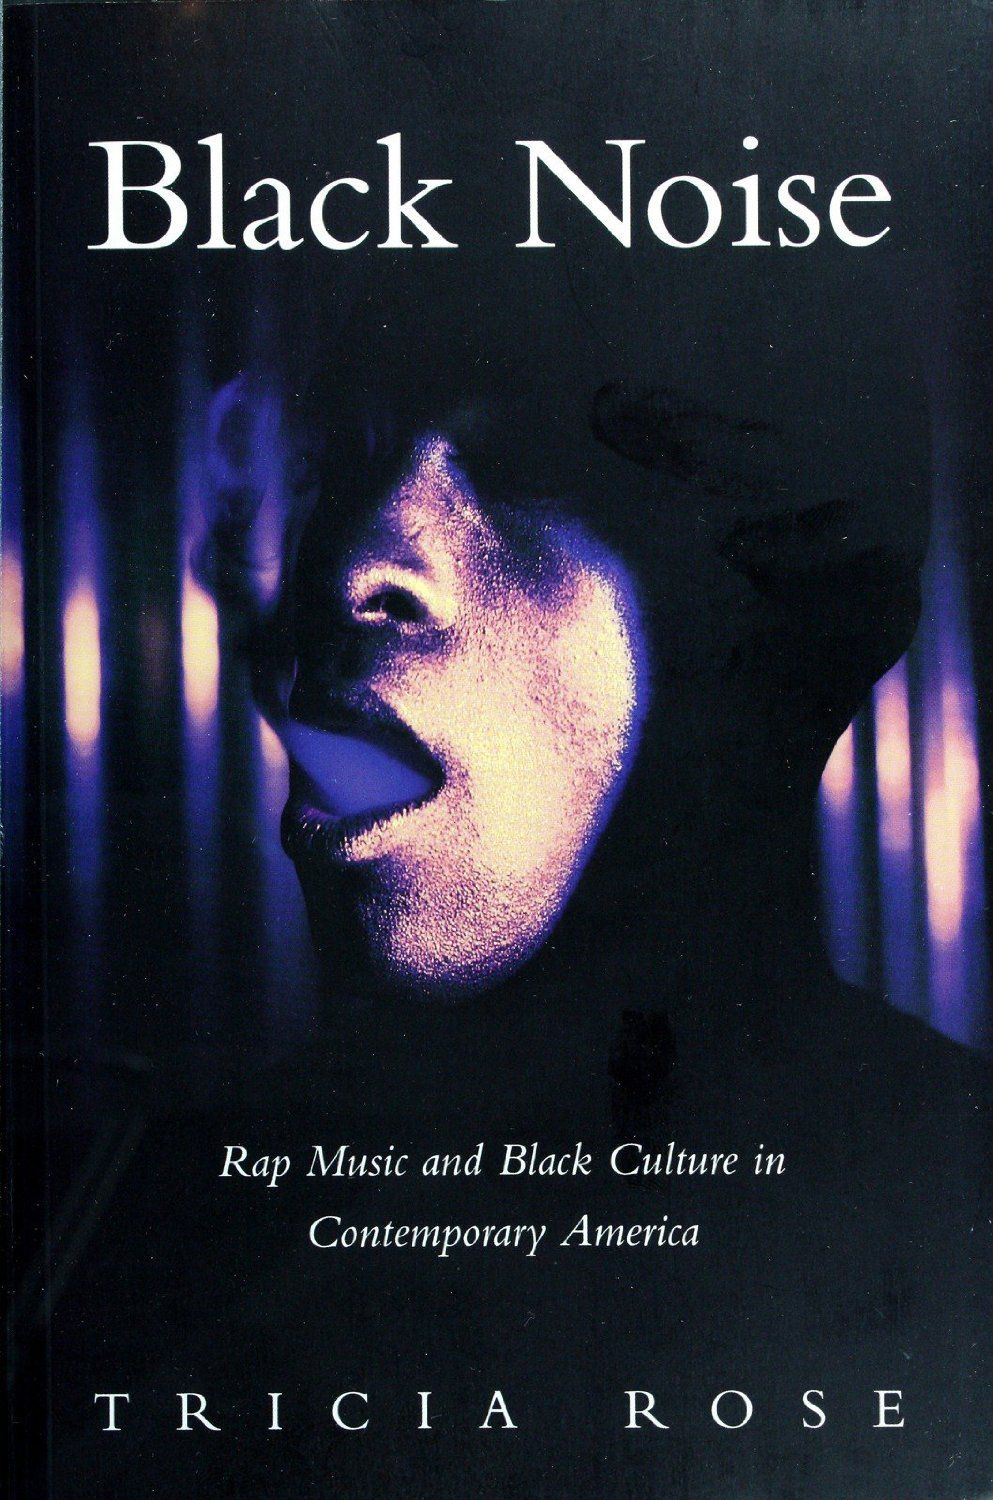 Black Noise Rap Music And Black Culture In Contemporary America Kindle Edition By Tricia Rose Arts Photography Kindle Ebooks Rap Music Black Culture Rap